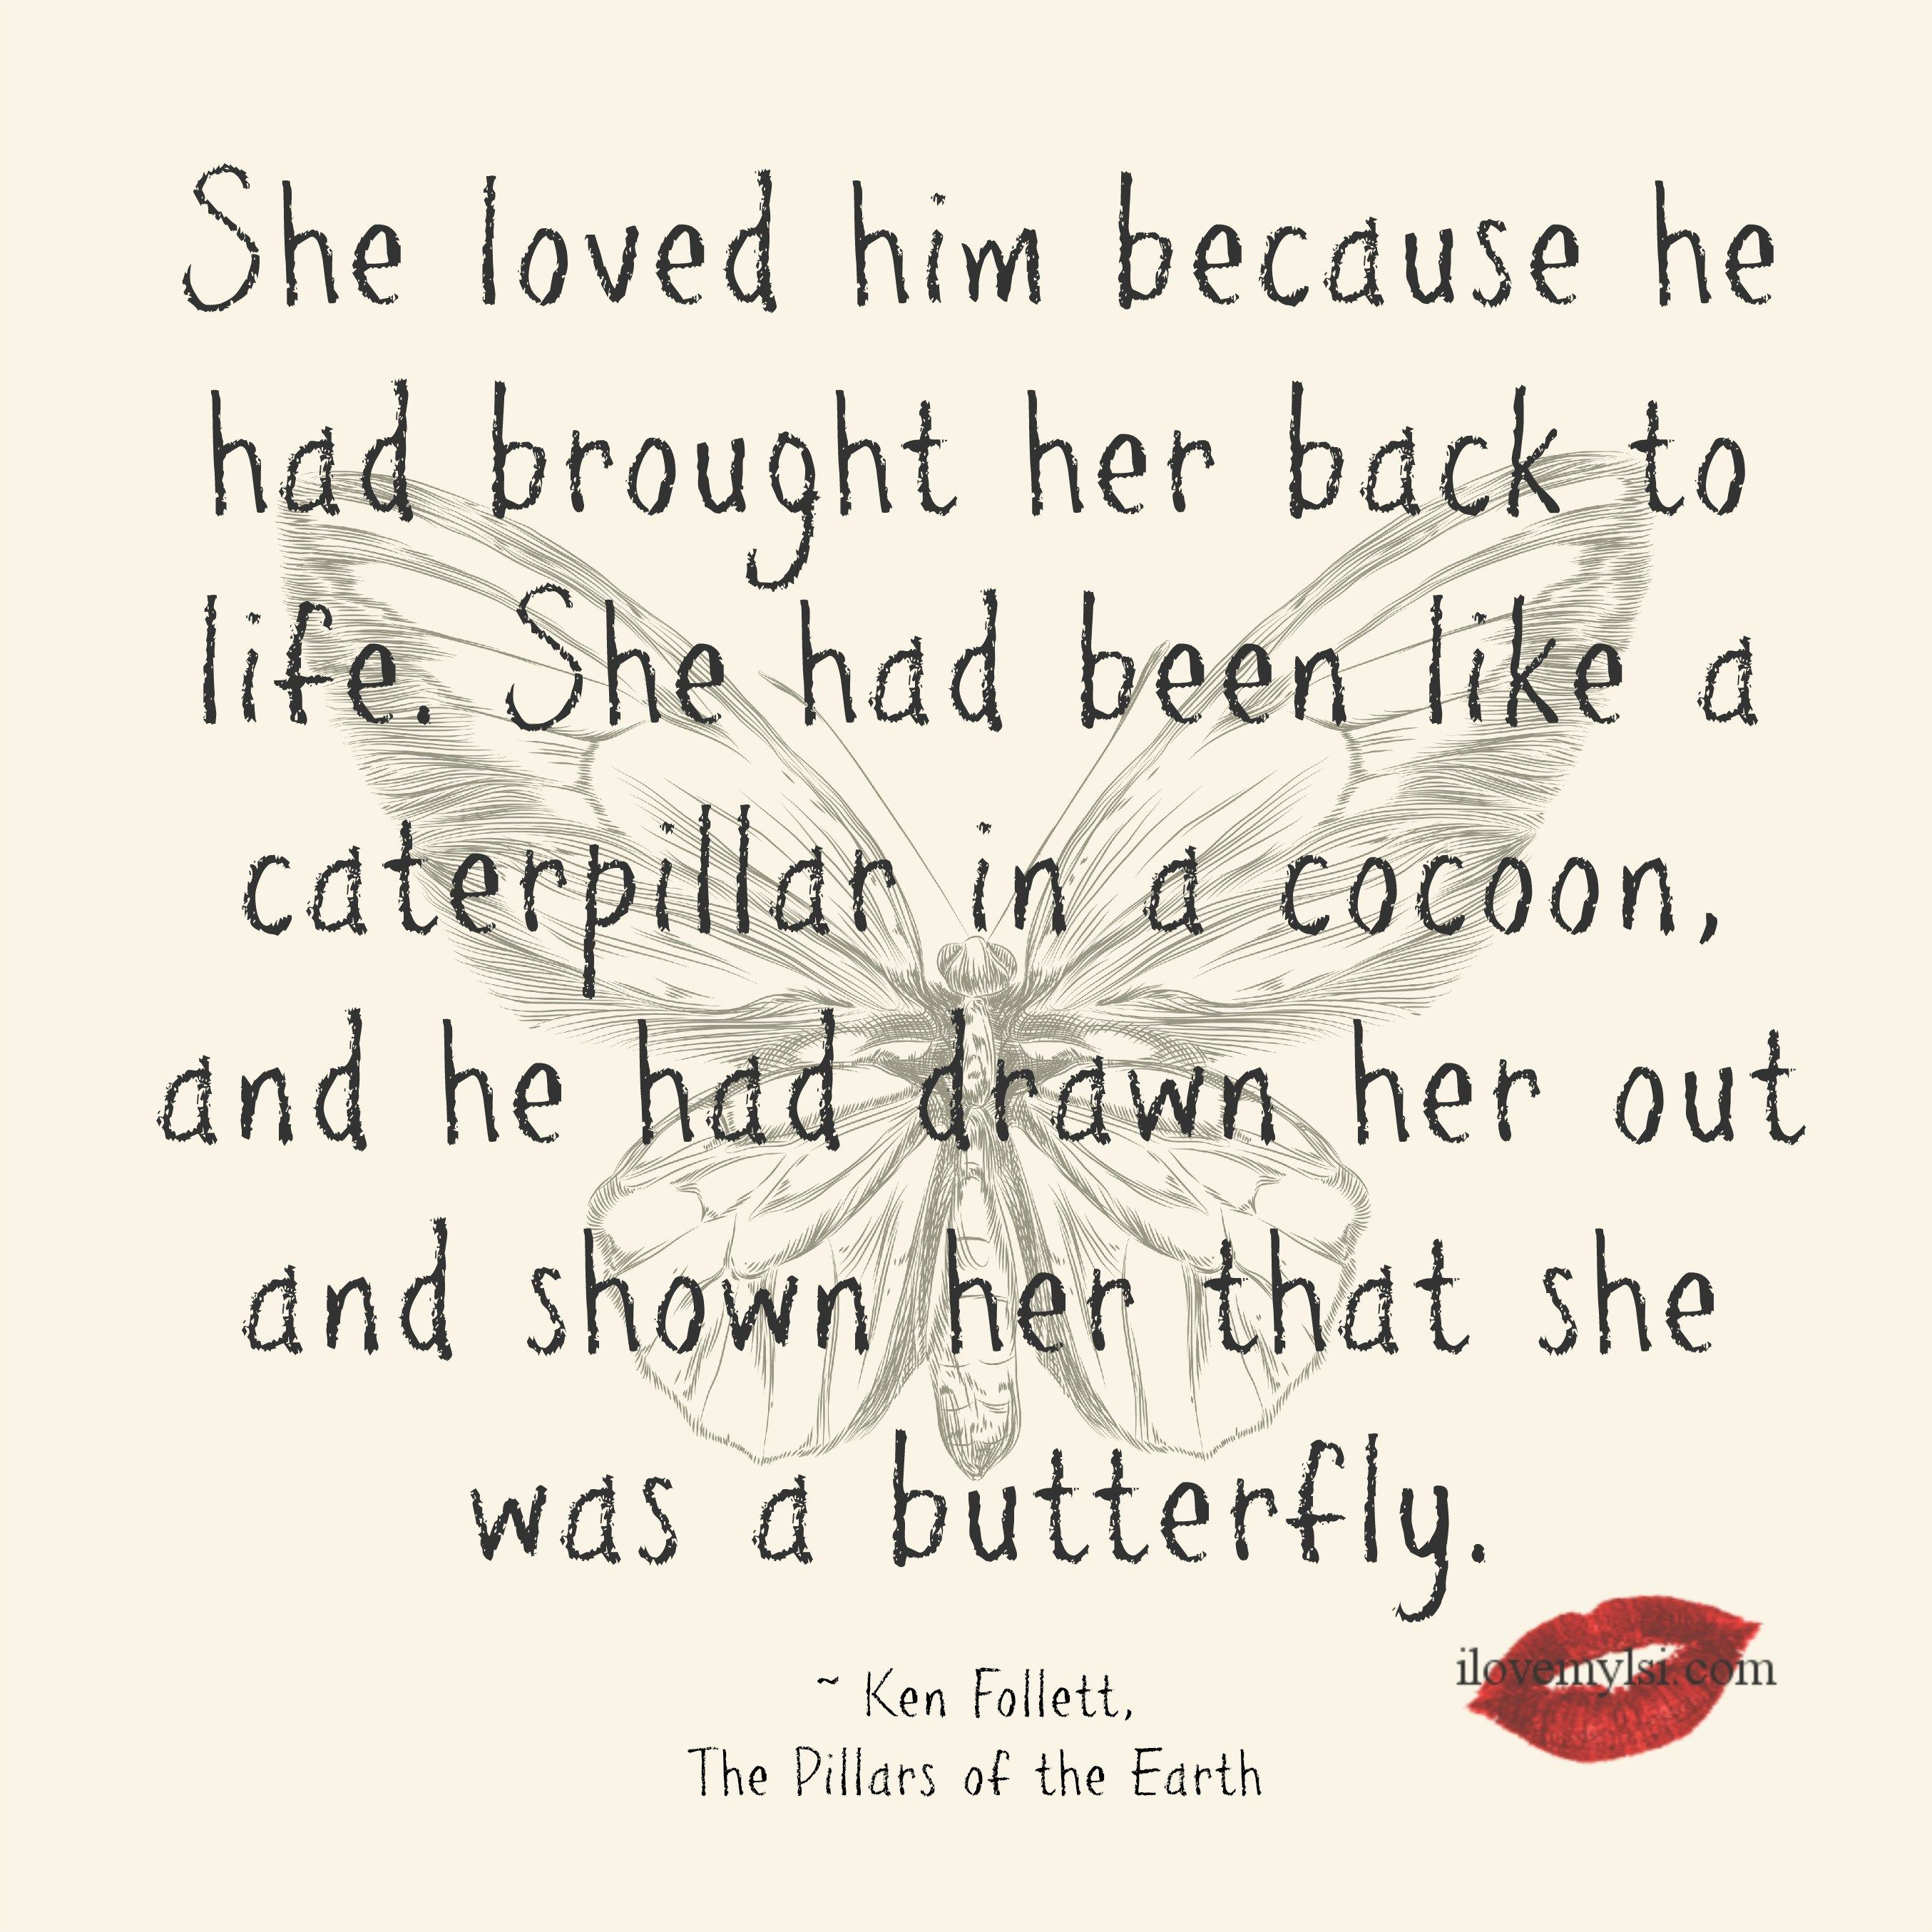 Funny Love Quotes For Him Pictures To Pin On Pinterest: The 25 Most Romantic Love Quotes You Will Ever Read